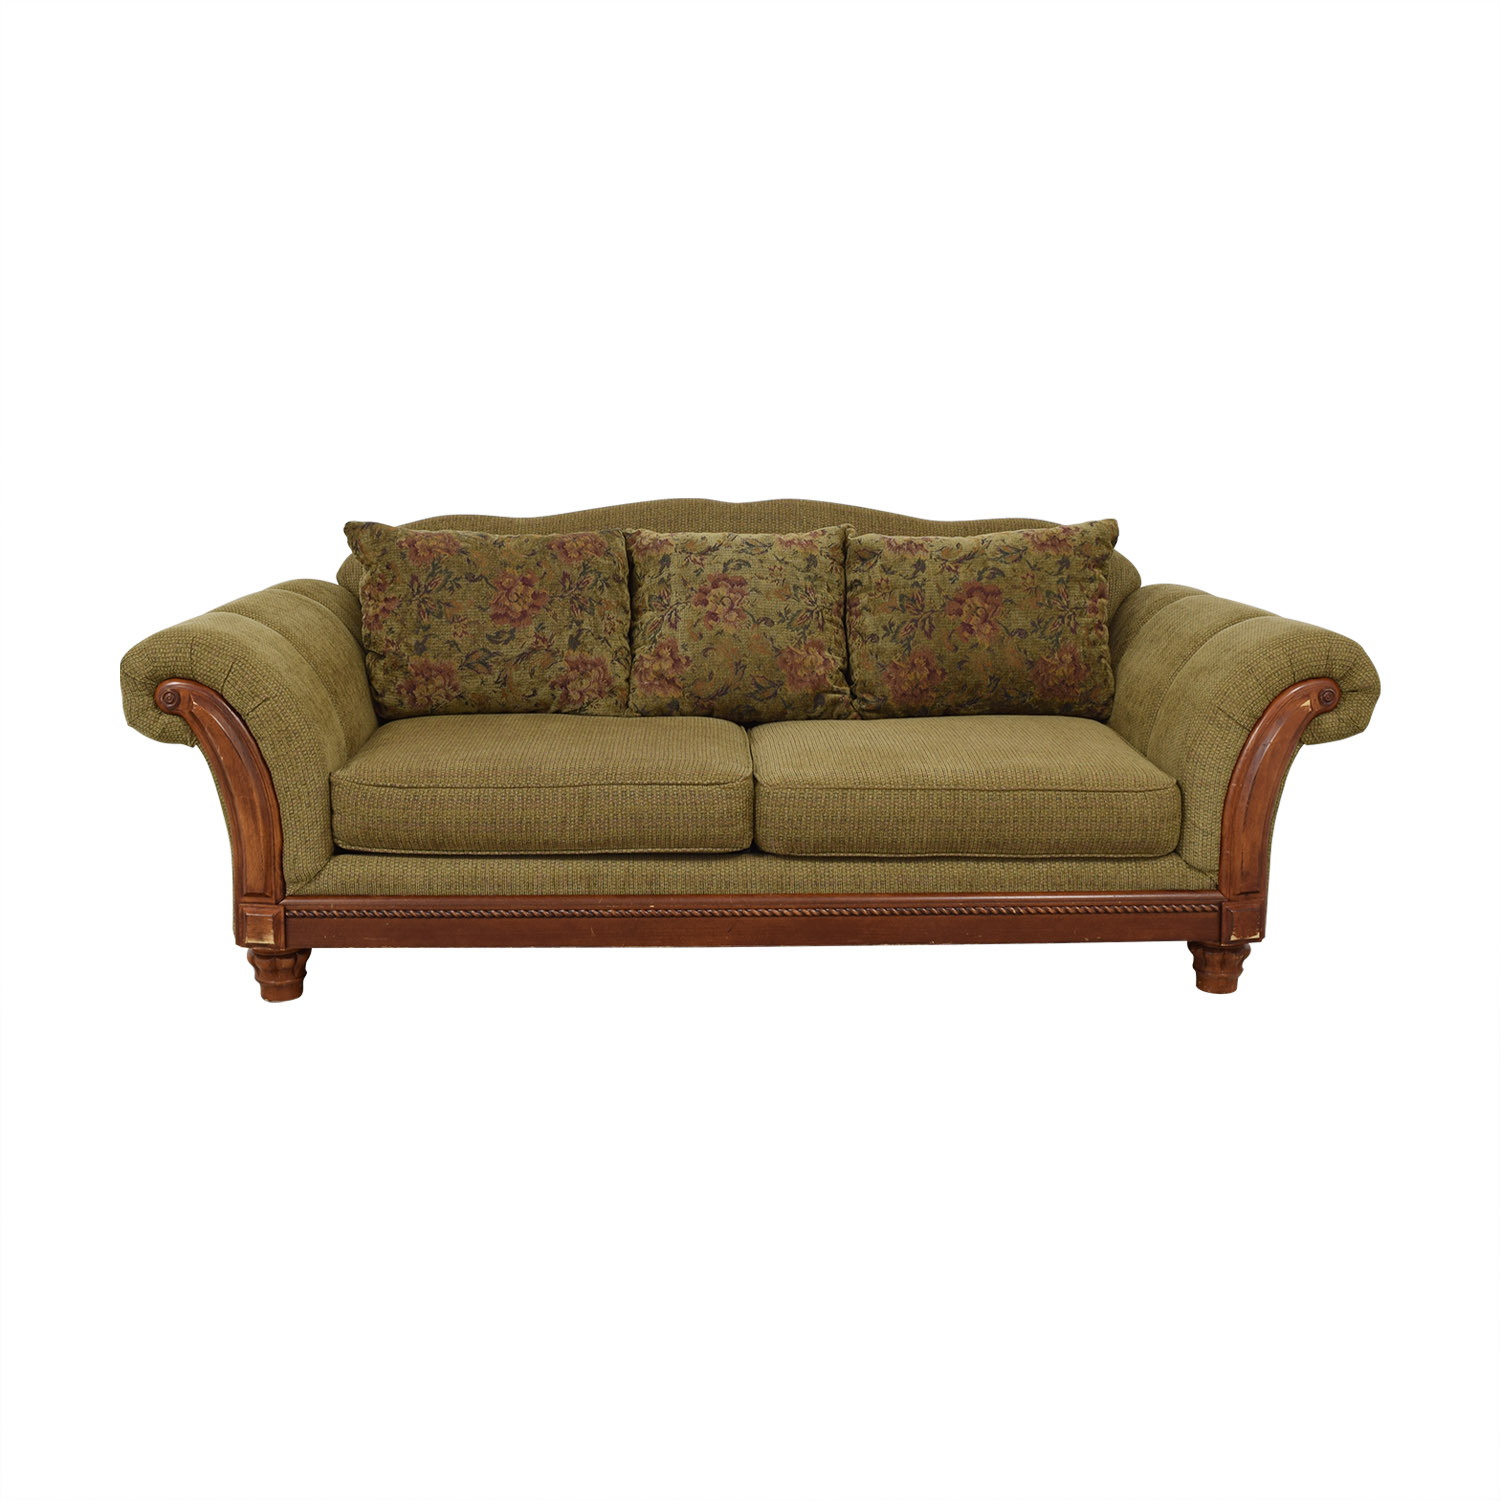 Klaussner Klaussner Upholstered Sofa used